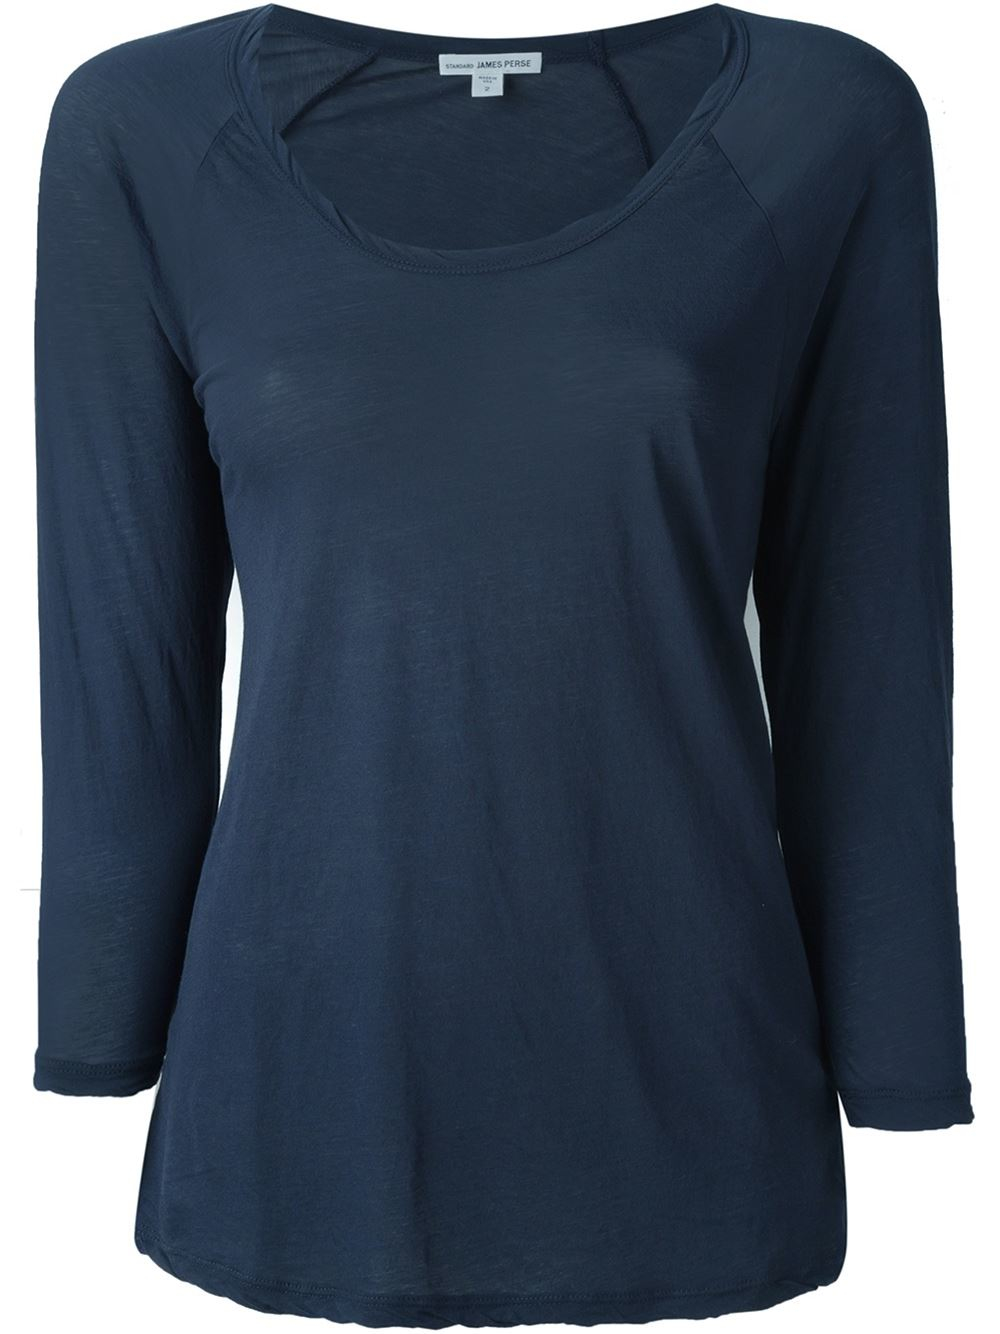 James perse raglan t shirt in blue lyst for James perse t shirts sale